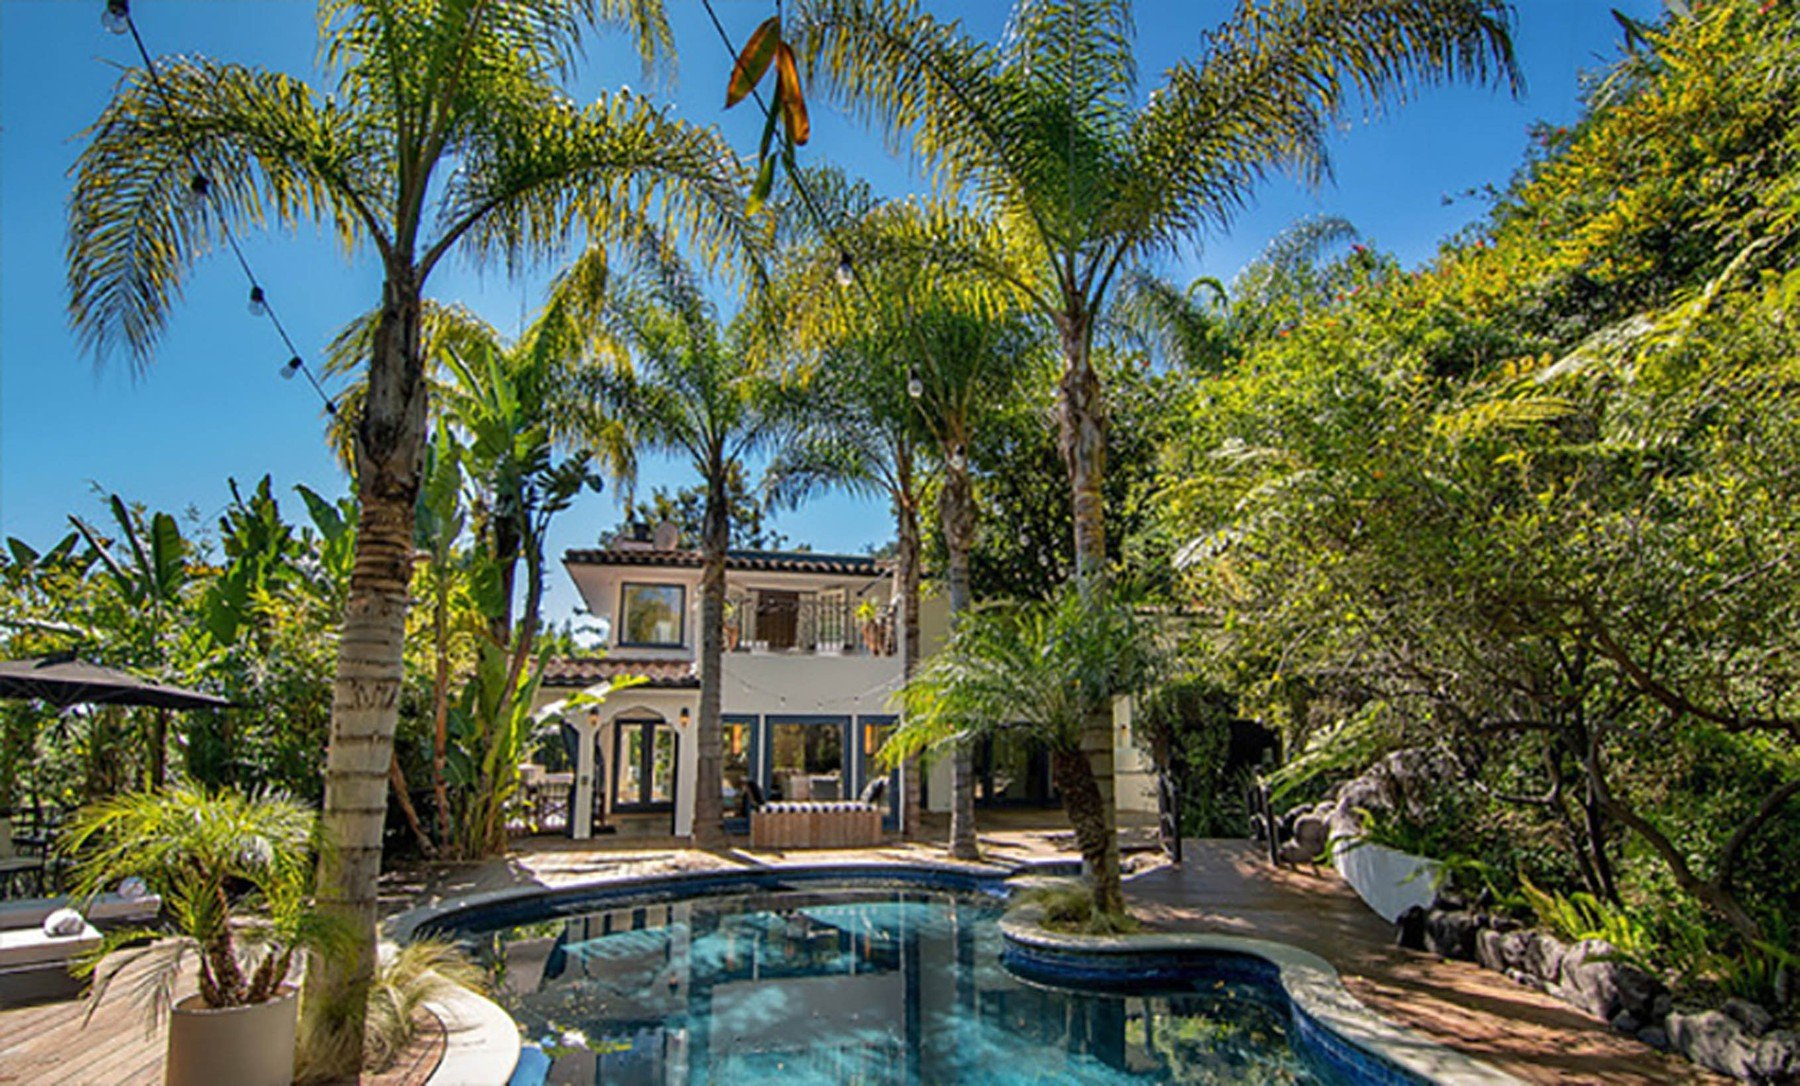 2-4-2019  Jessica Alba is looking to sell her home in Beverly Hills, Los Angeles for .195 million having recently purchased a larger house. With 5,300 square feet of living space, there are 5 bedrooms and 7 bathrooms. Built in the mid-1970s, the house sits on almost half of an acre of land behind large security gates.  Pictured: Jessica Alba's house, Image: 423690005, License: Rights-managed, Restrictions: , Model Release: no, Credit line: Profimedia, Planet